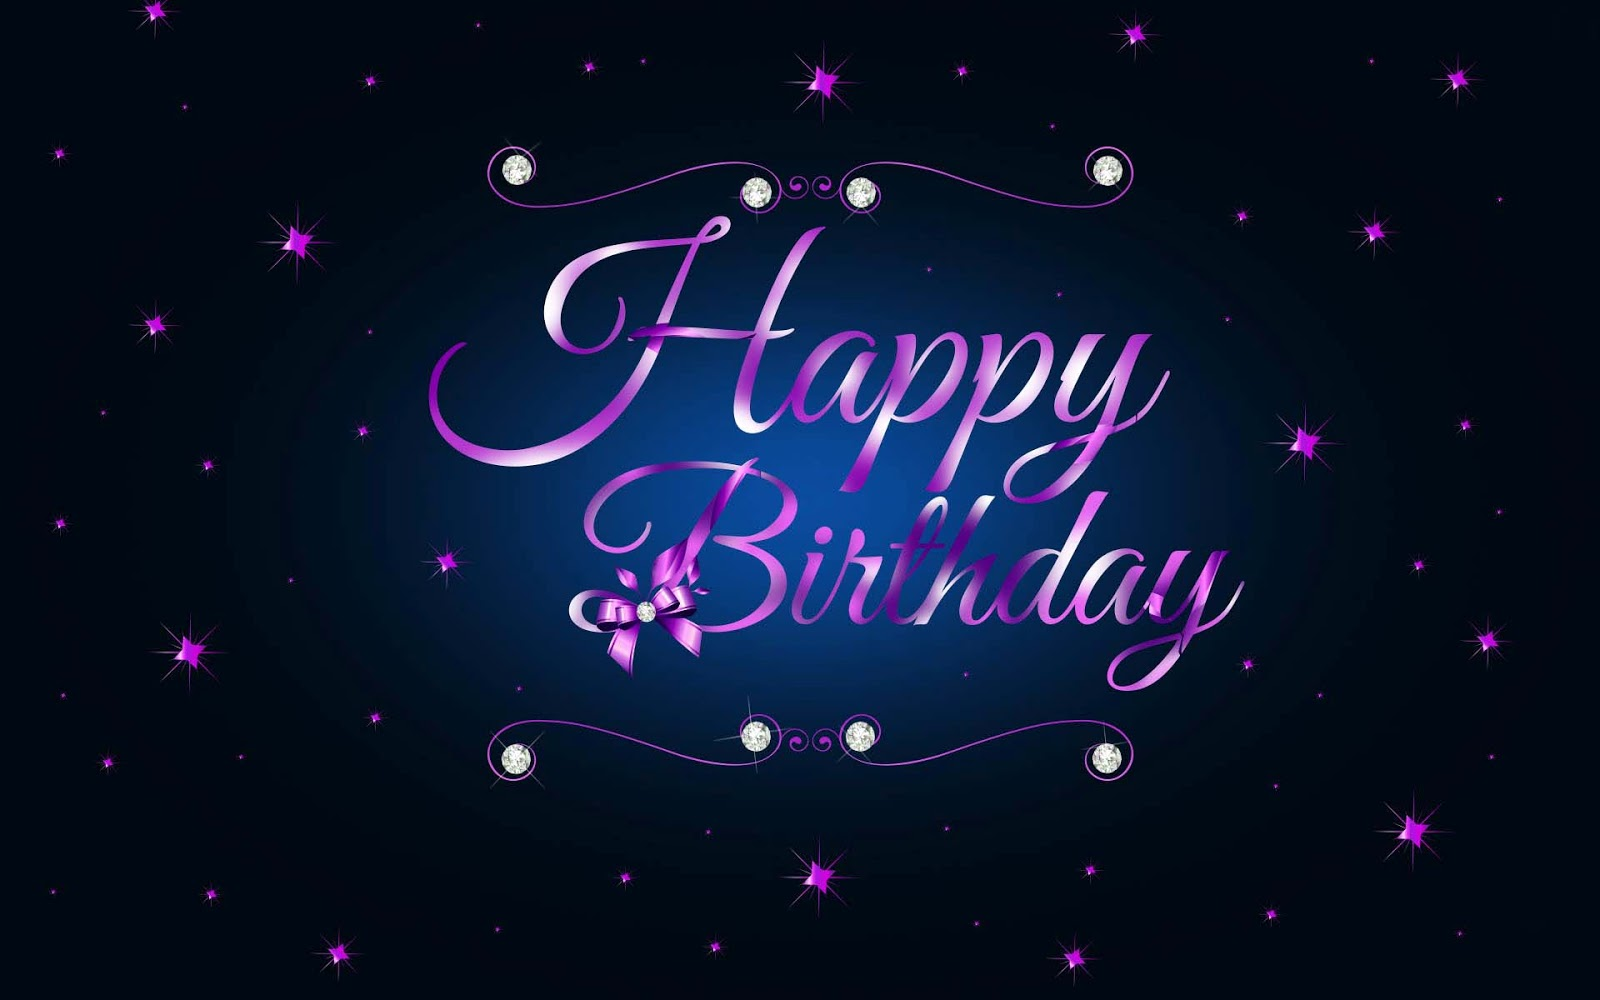 happy birthday wishes hd images ; Happy-Birthday-Wishes-Greetings-Vector